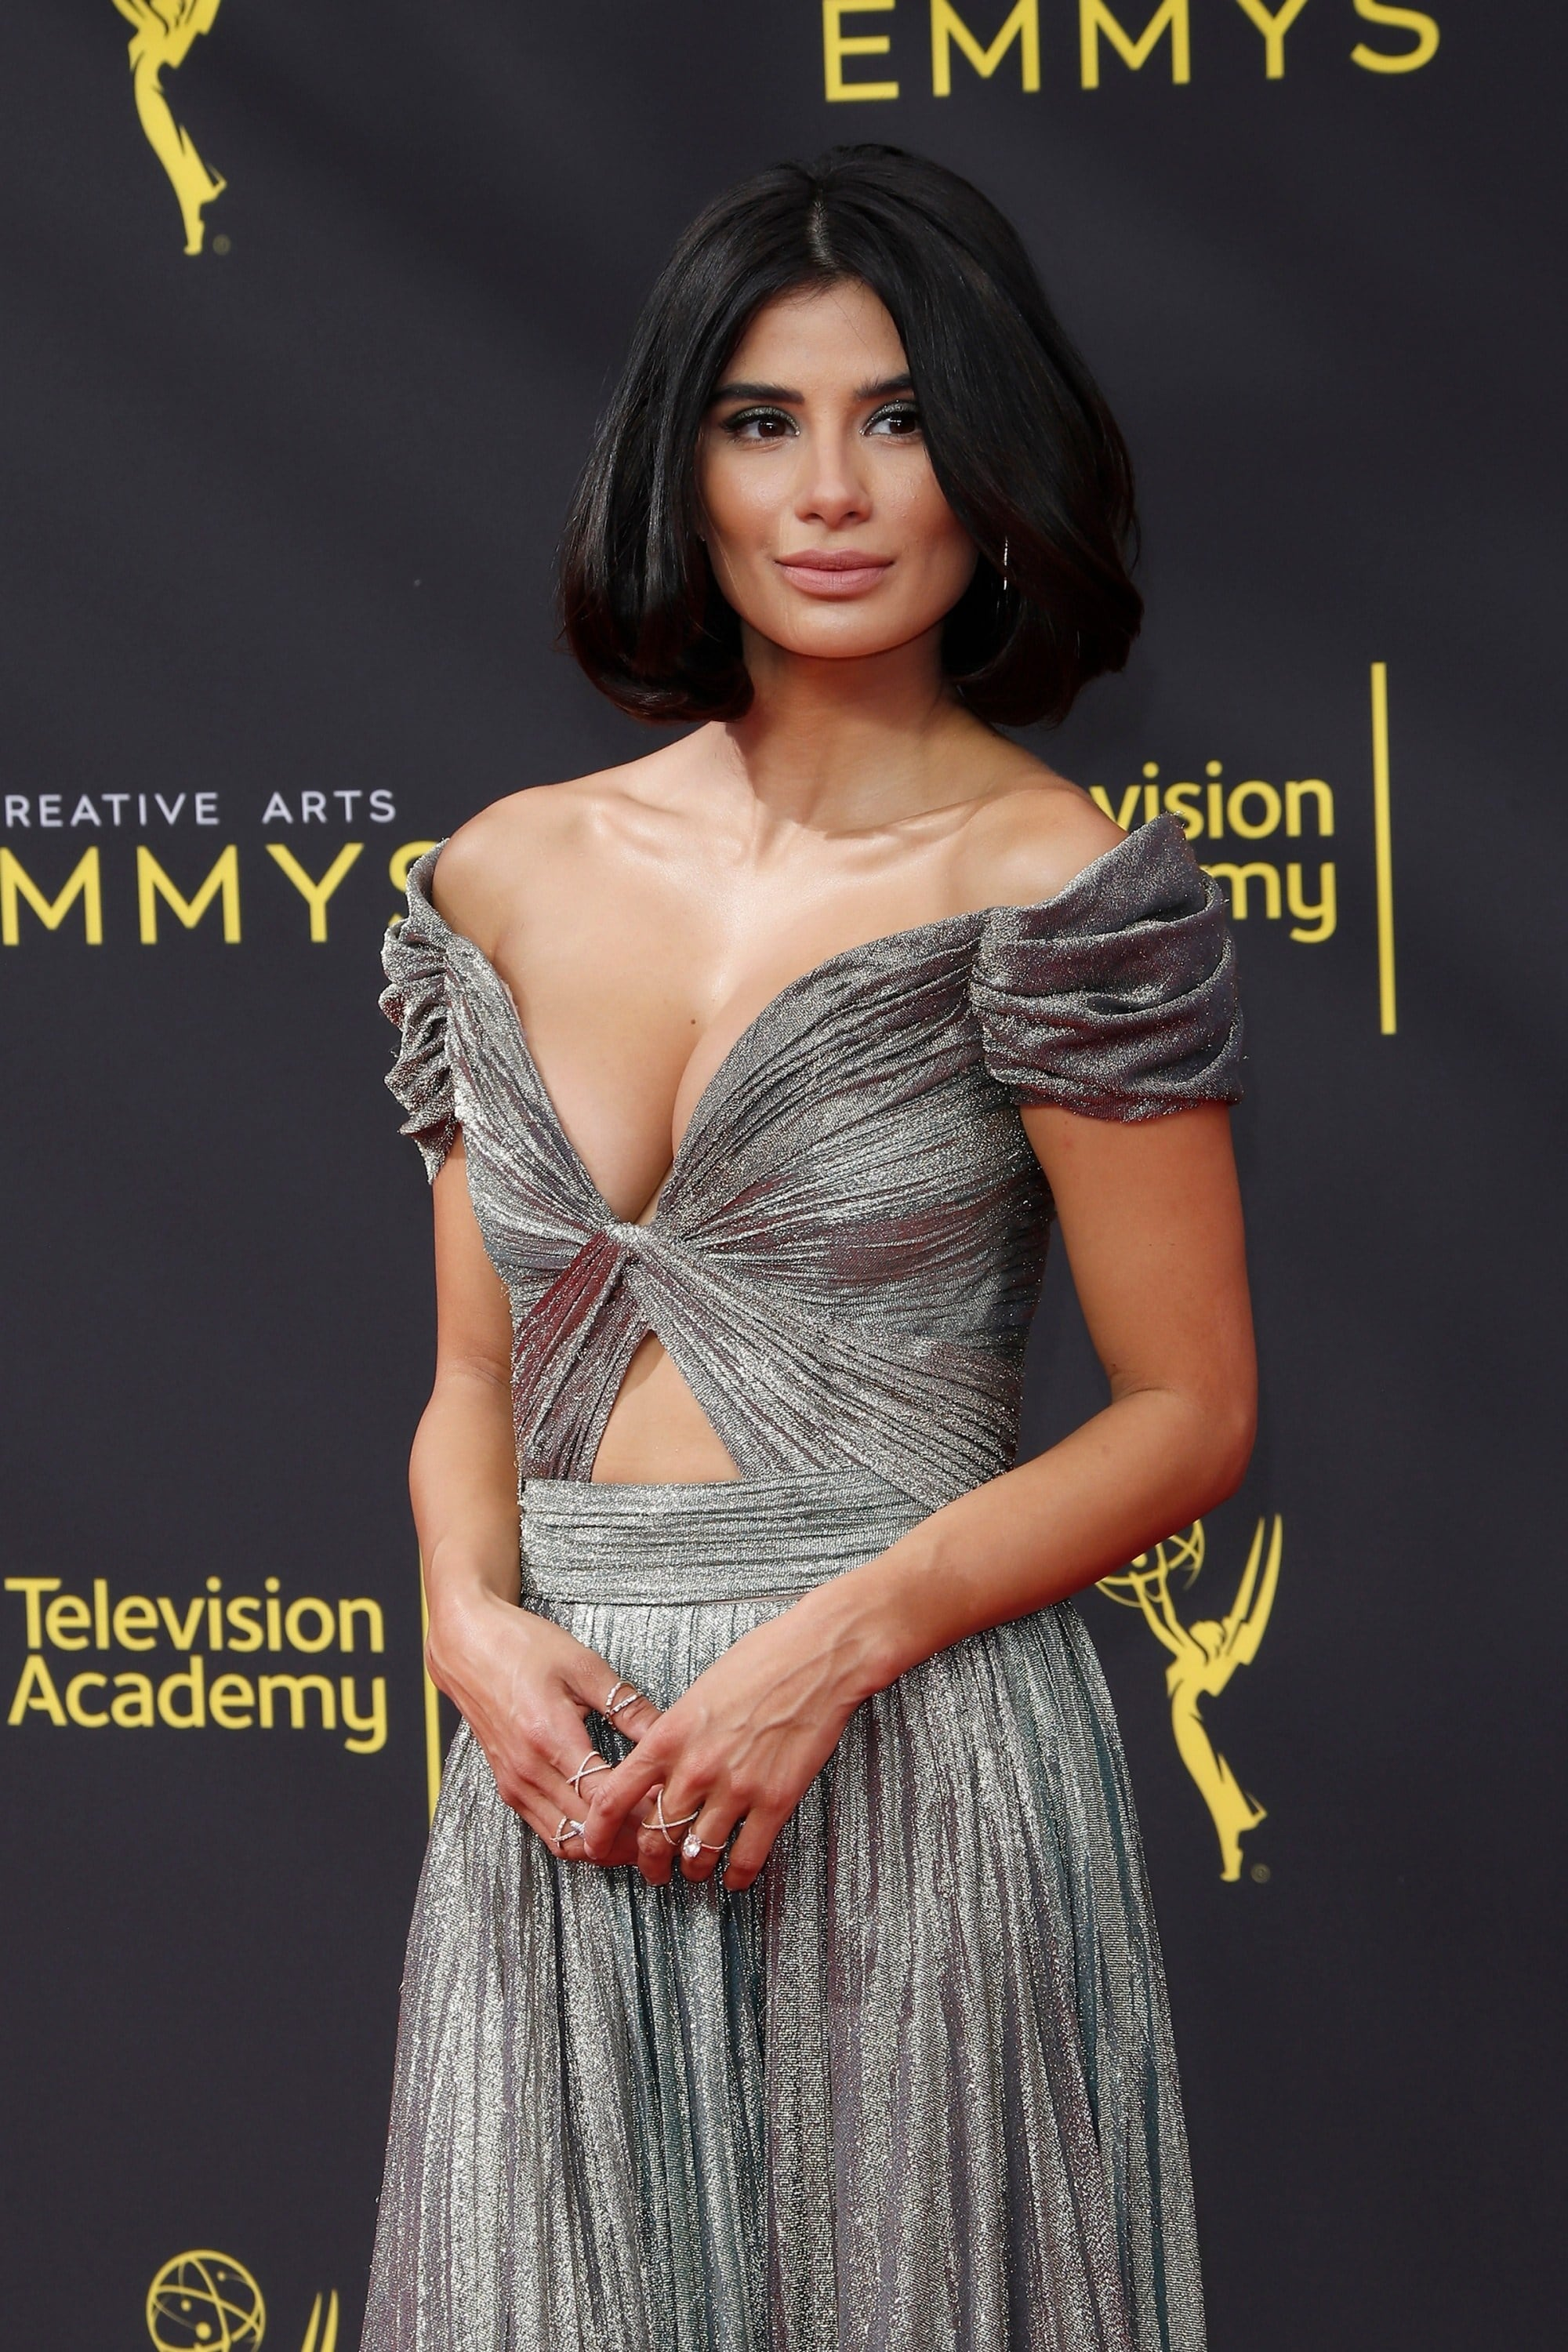 Emmy Awards 2019 Best Hairstyles: Diane Guerrero with her volumized bob